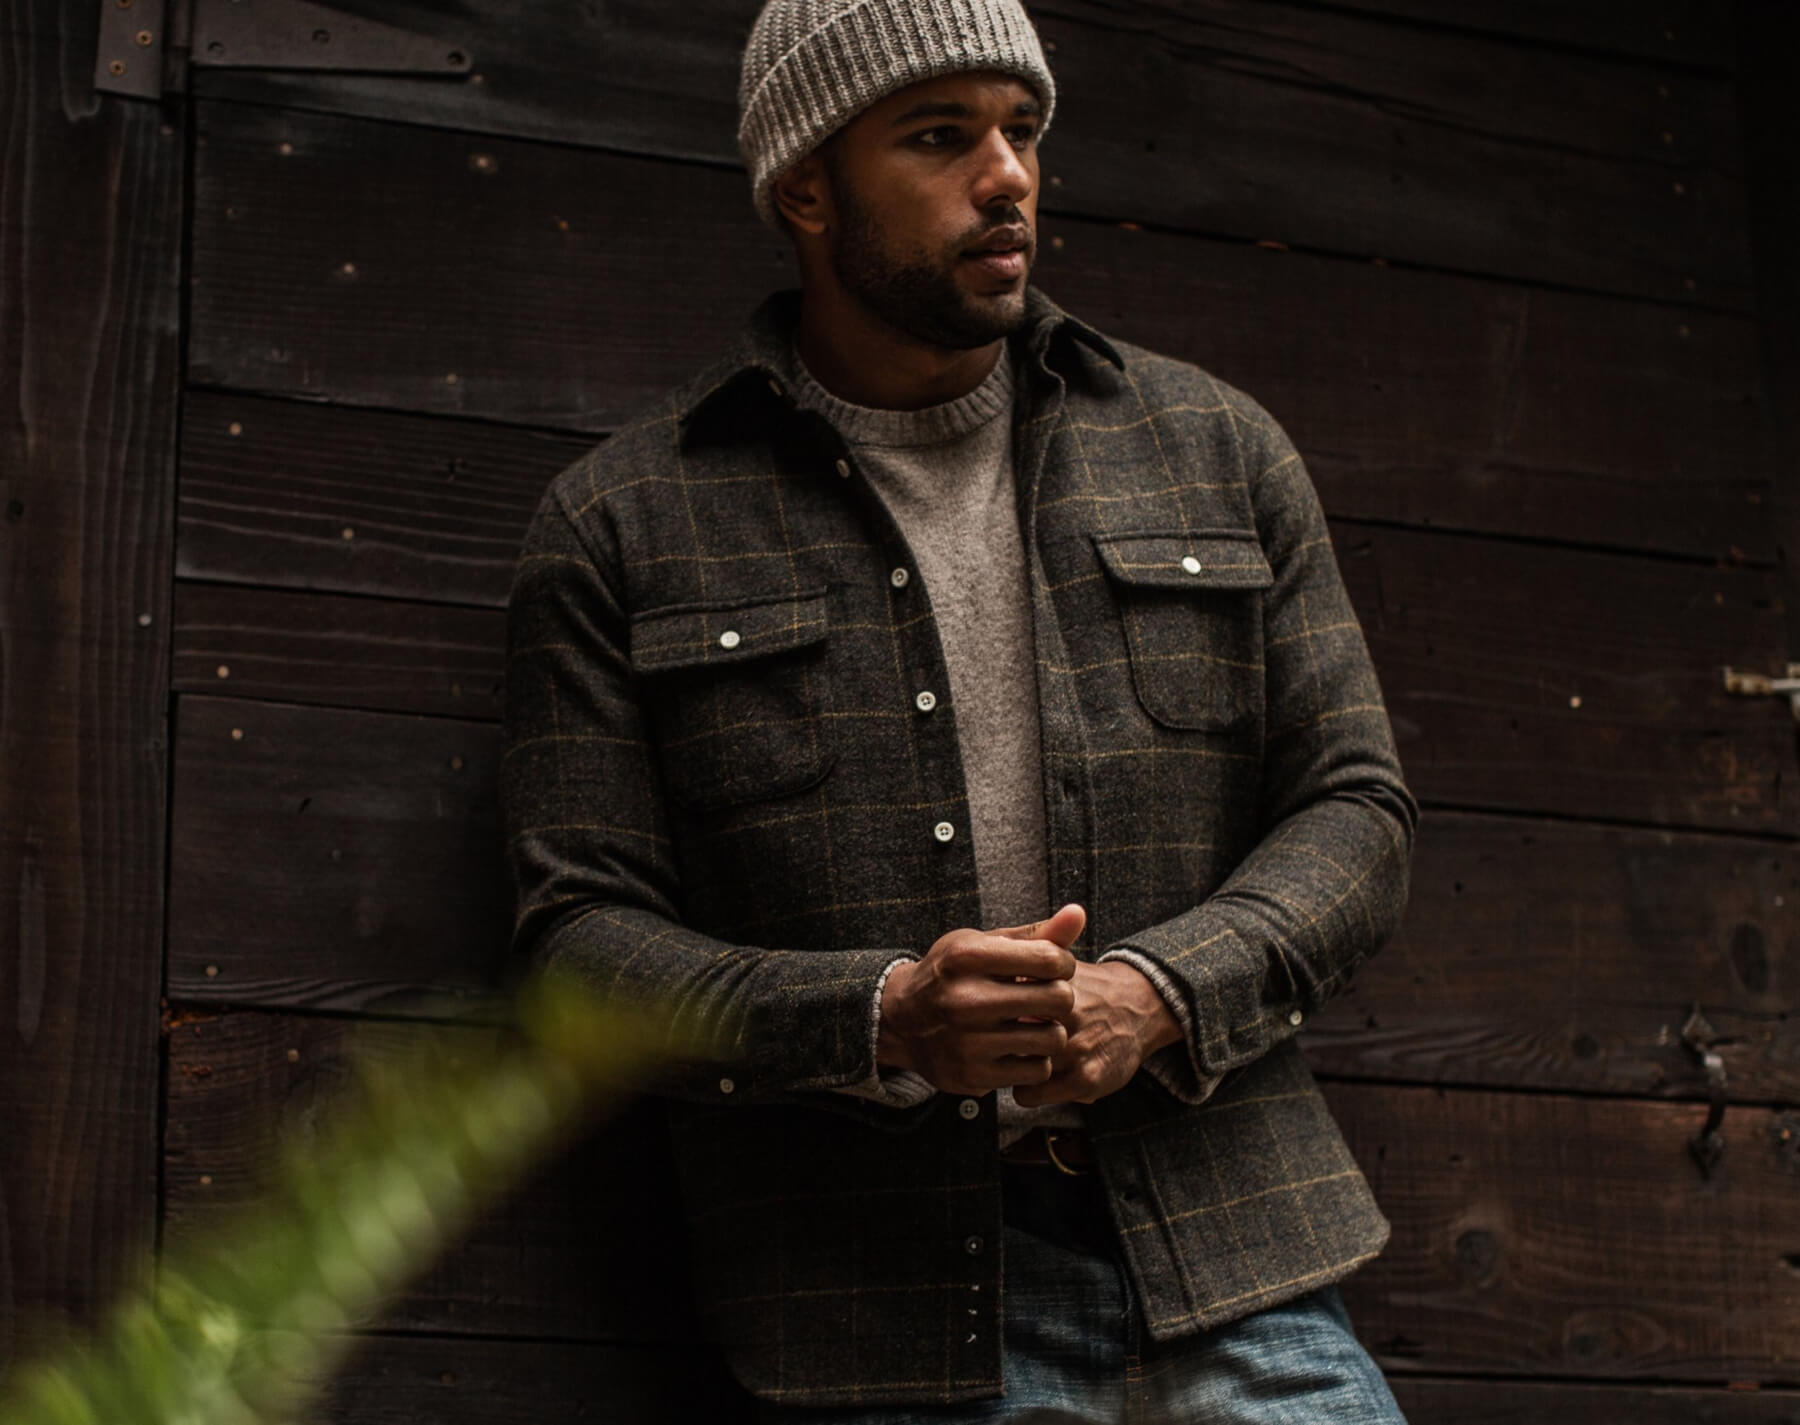 Men's fall weekend outfit ideas